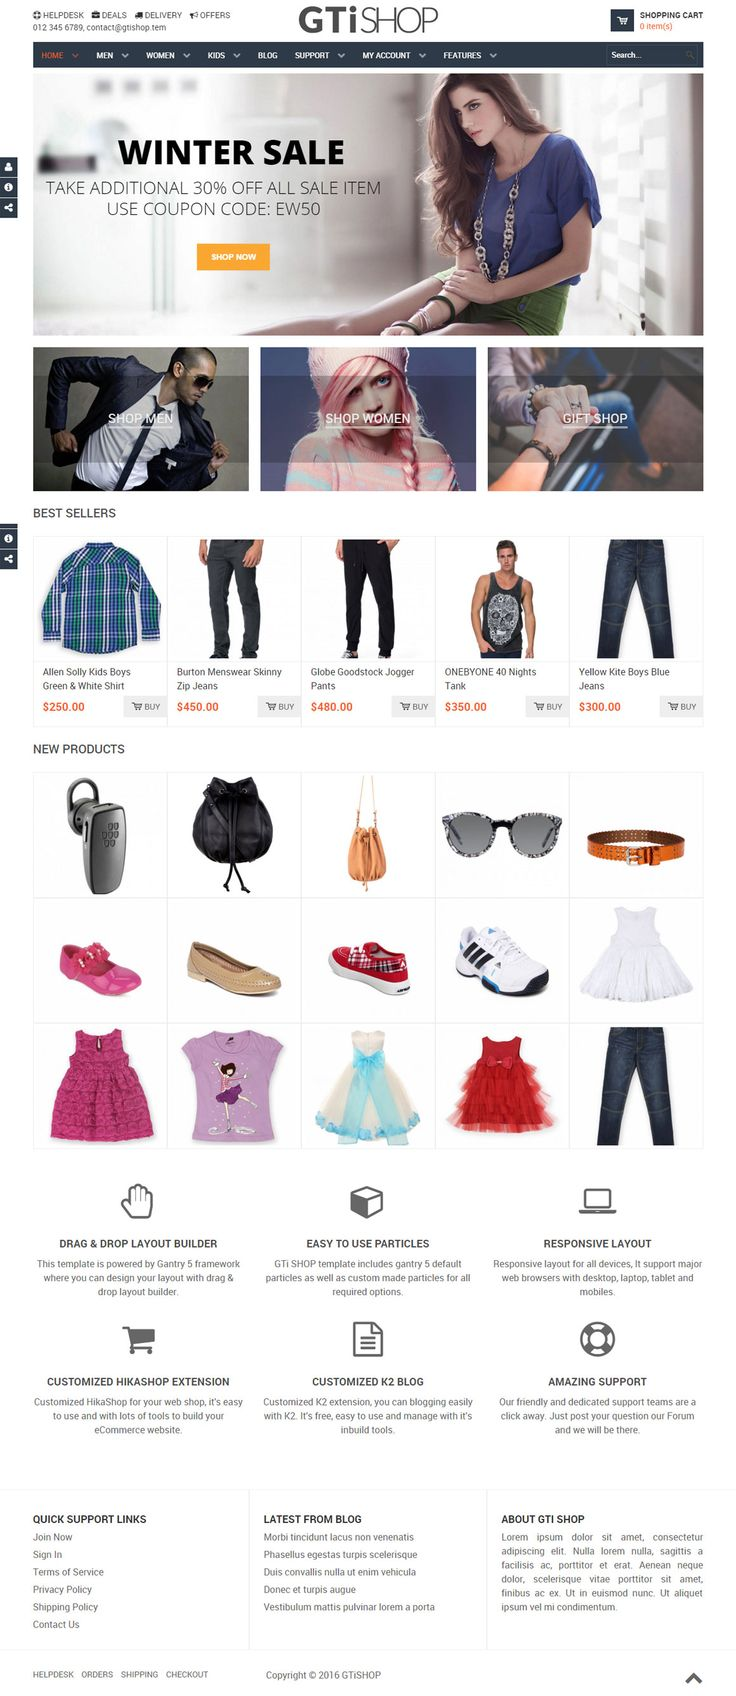 GTi SHOP- Joomla, K2 and HikaShop Template -- GTI SHOP is a responsive Joomla! Template with highly cusmization HikaShop and K2 styles. Using GTI SHOP and Gantry 5 drag and drop layout builder you can create powerful ecommerce websites easily. Joomla 2.5 - 3.x